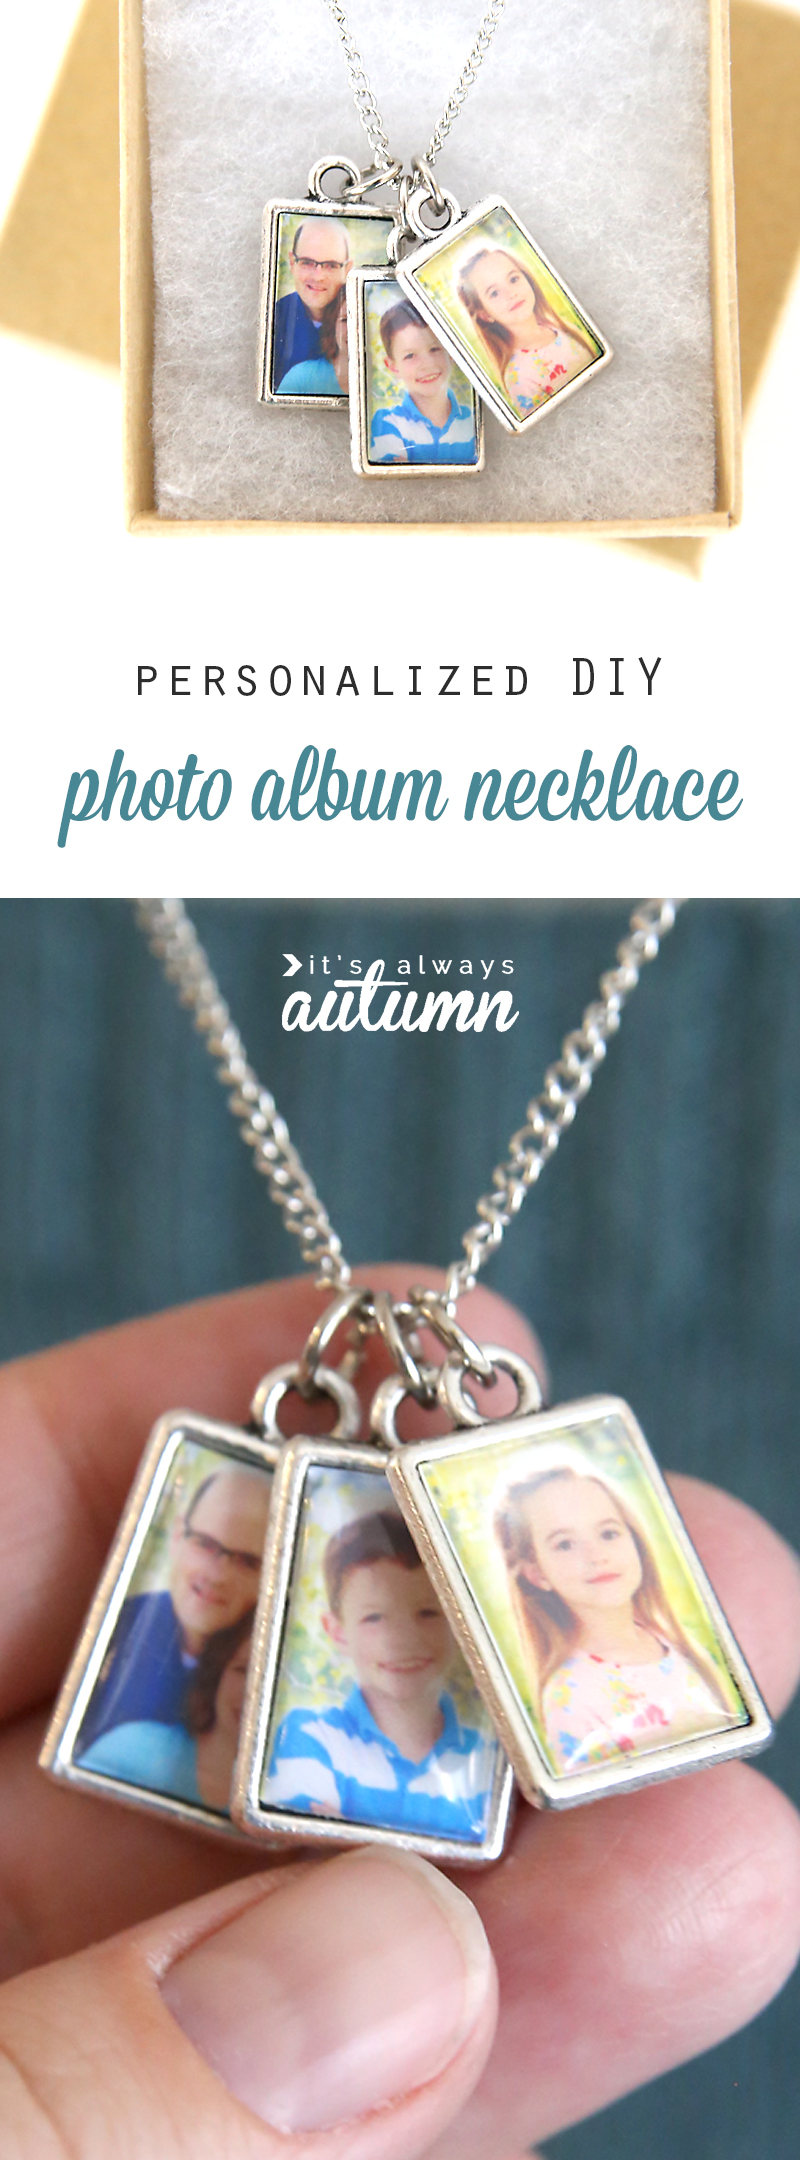 personalized necklace with photos in pendants